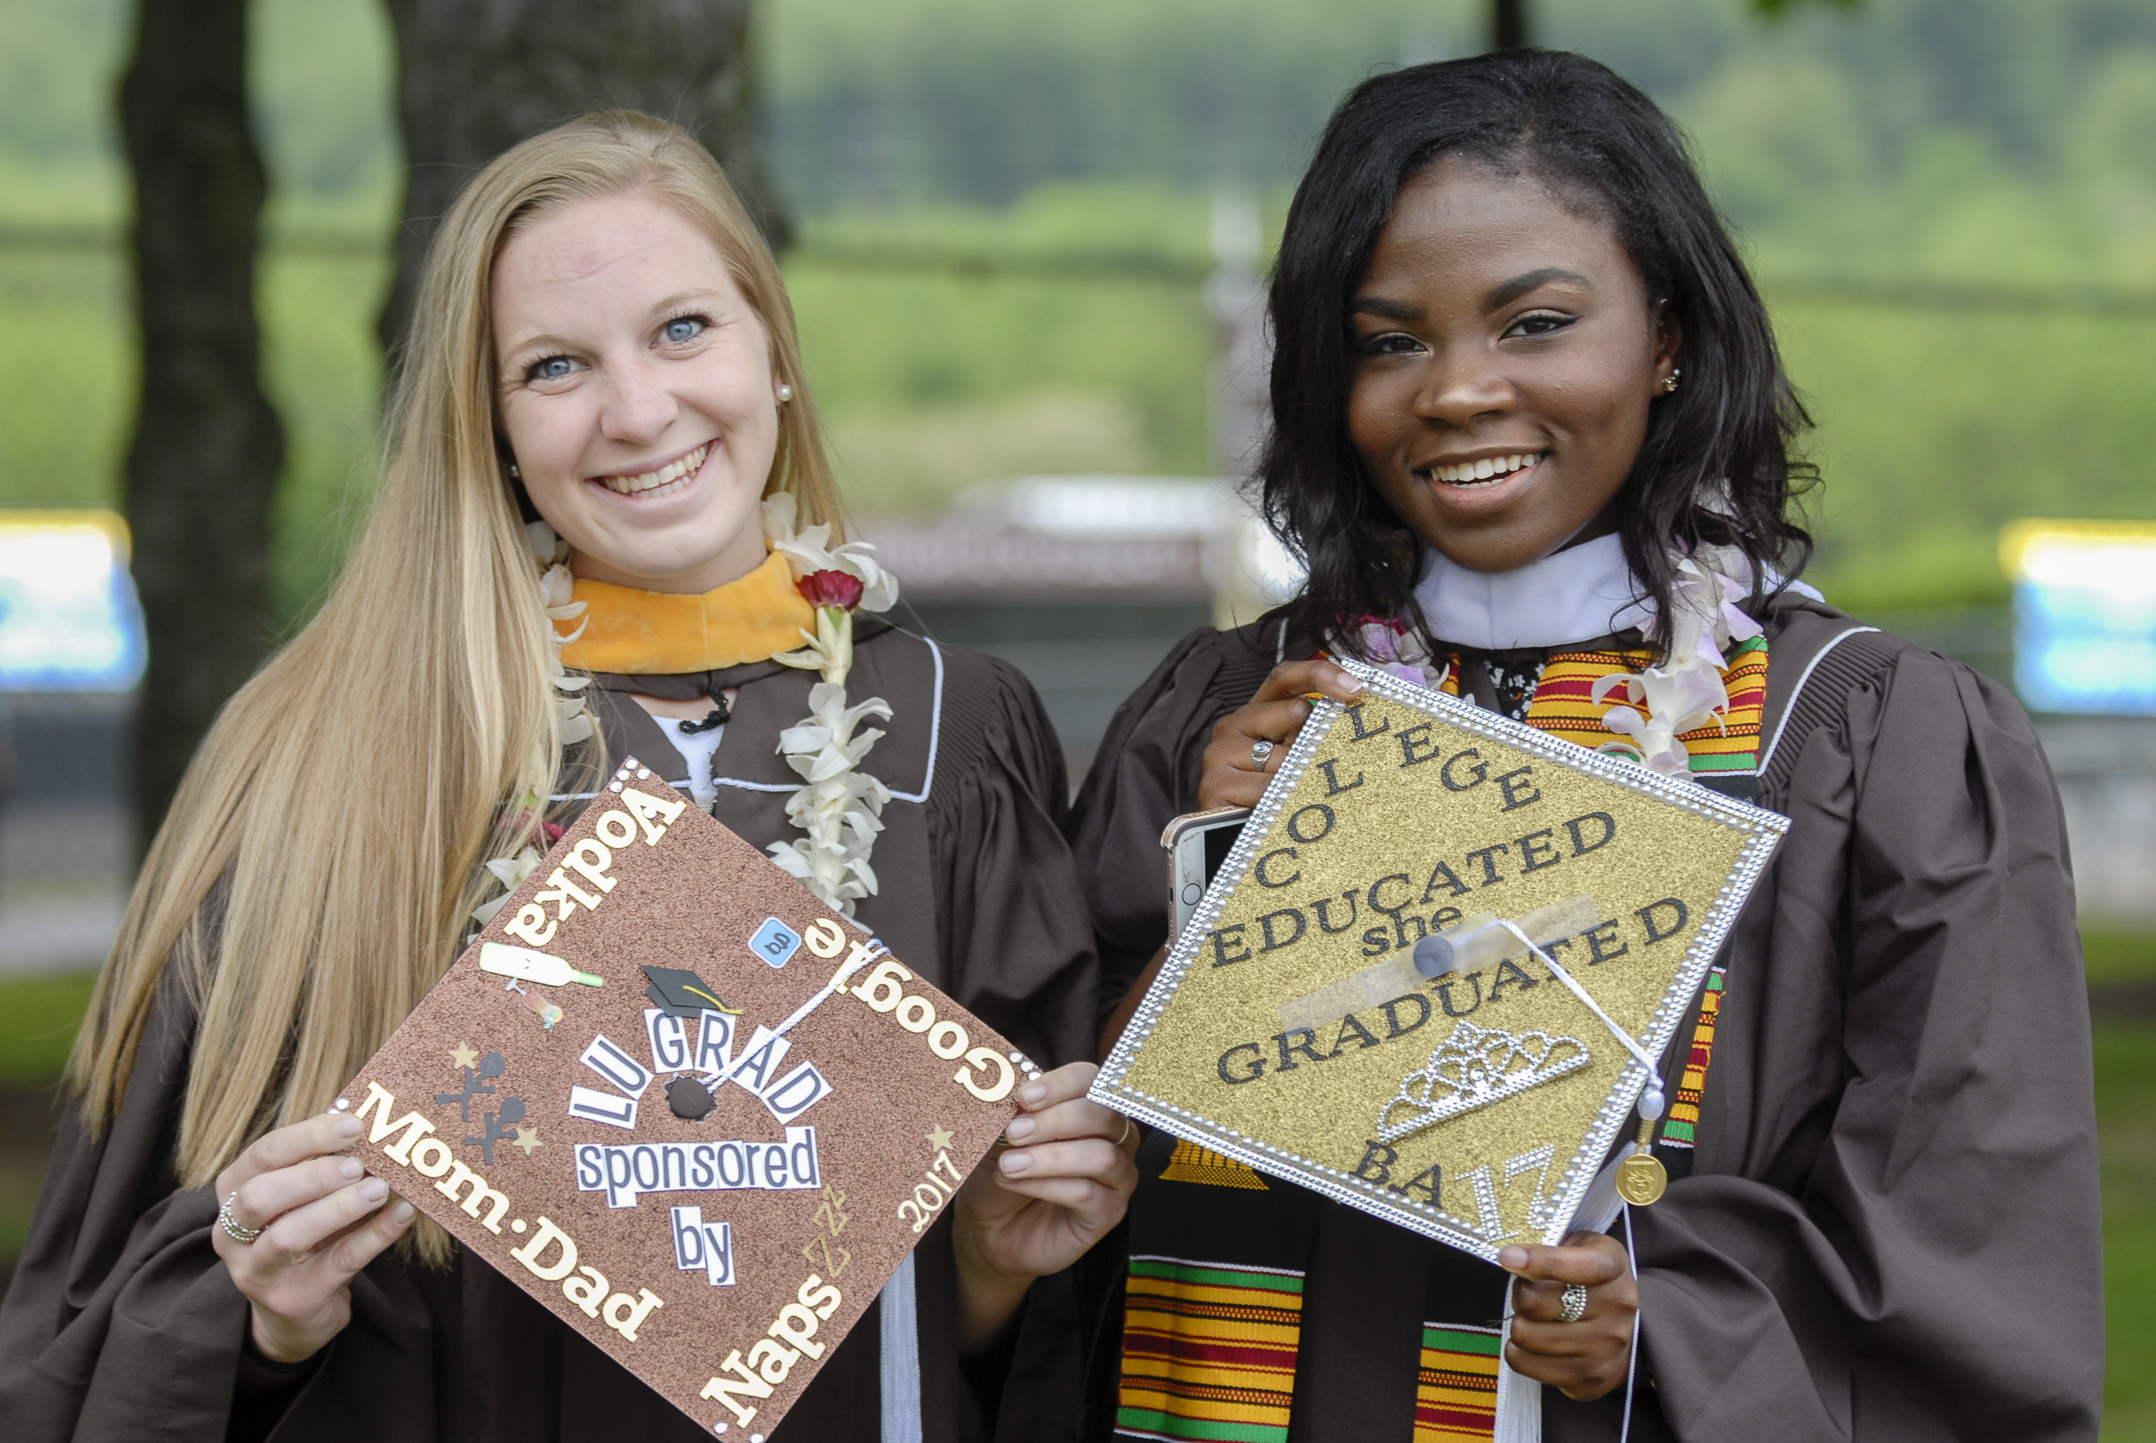 Emilee Strange, '17, left, and Aminat Ologunebi, '17, hold their decorated graduation hats Monday, May 22, 2017, outside Goodman Stadium. Strange is graduating with a degree in biology, while Ologunebi is graduating with a degree in journalism and science writing. (Roshan Giyanani/B&W Staff)